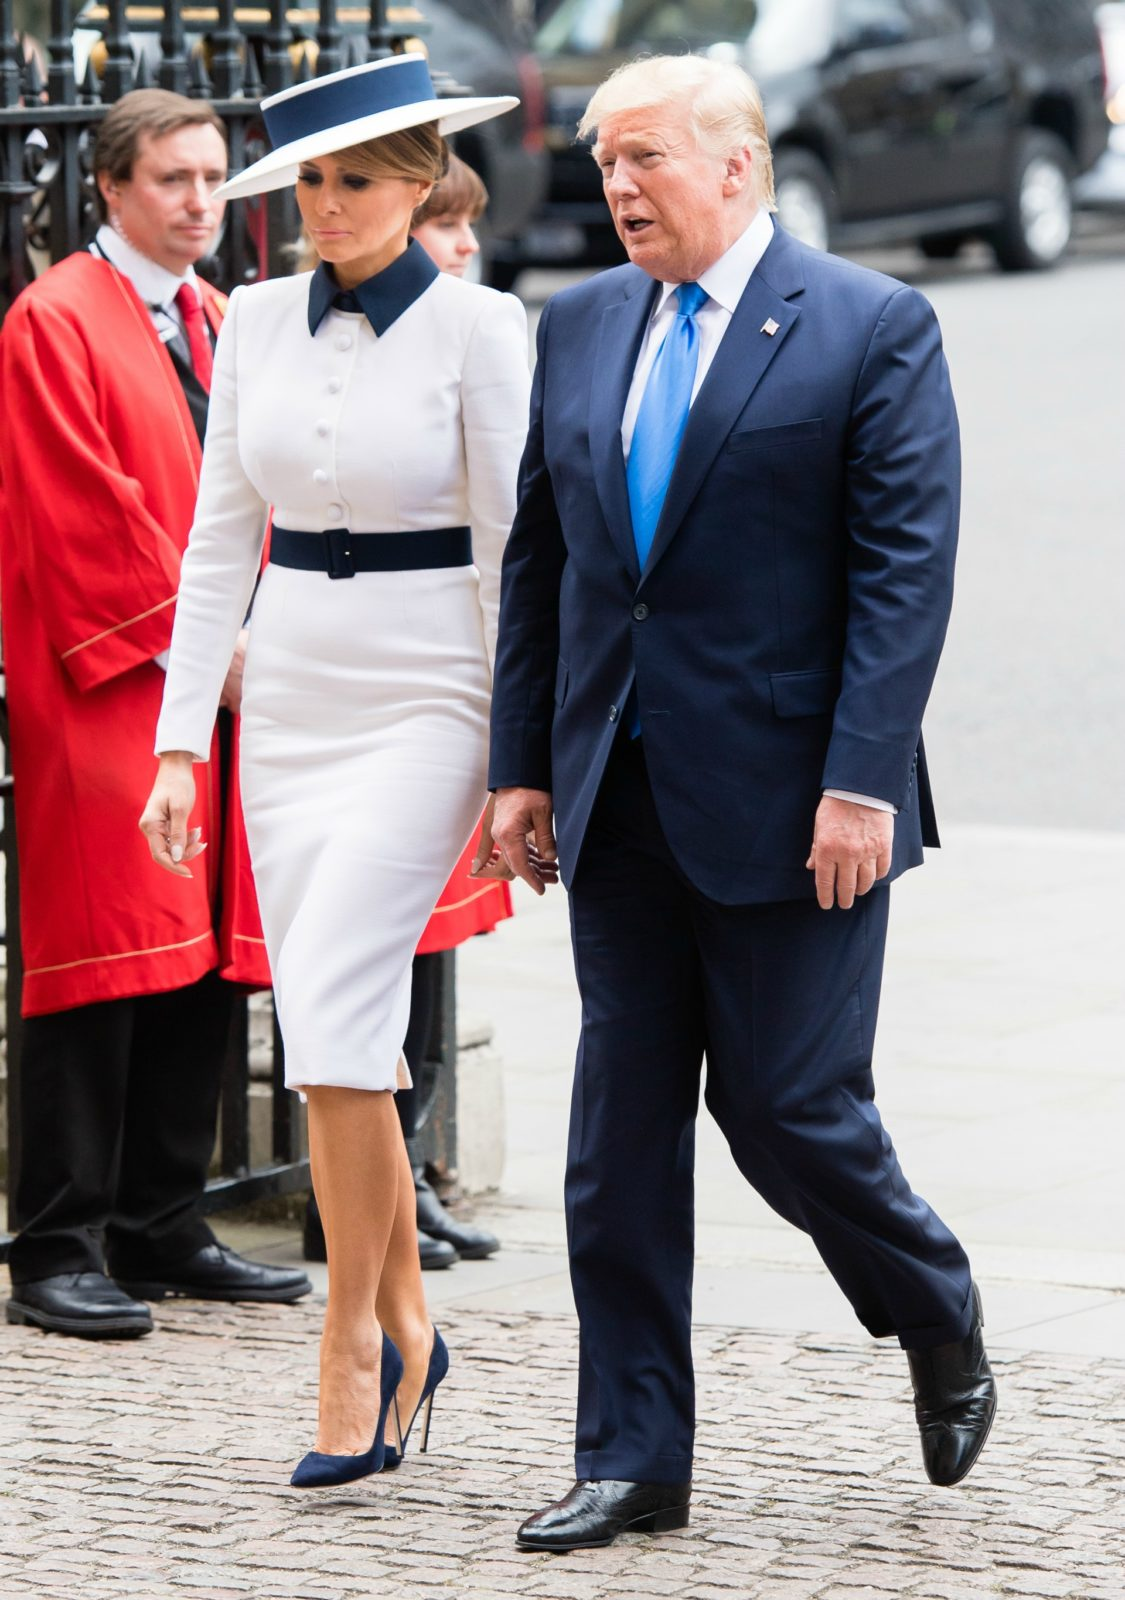 Melania has channeled the late Princess Diana in a retro white ensemble as she arrived at Buckingham Palace on Monday afternoon alongside her husband Donald Trump. Source: Getty